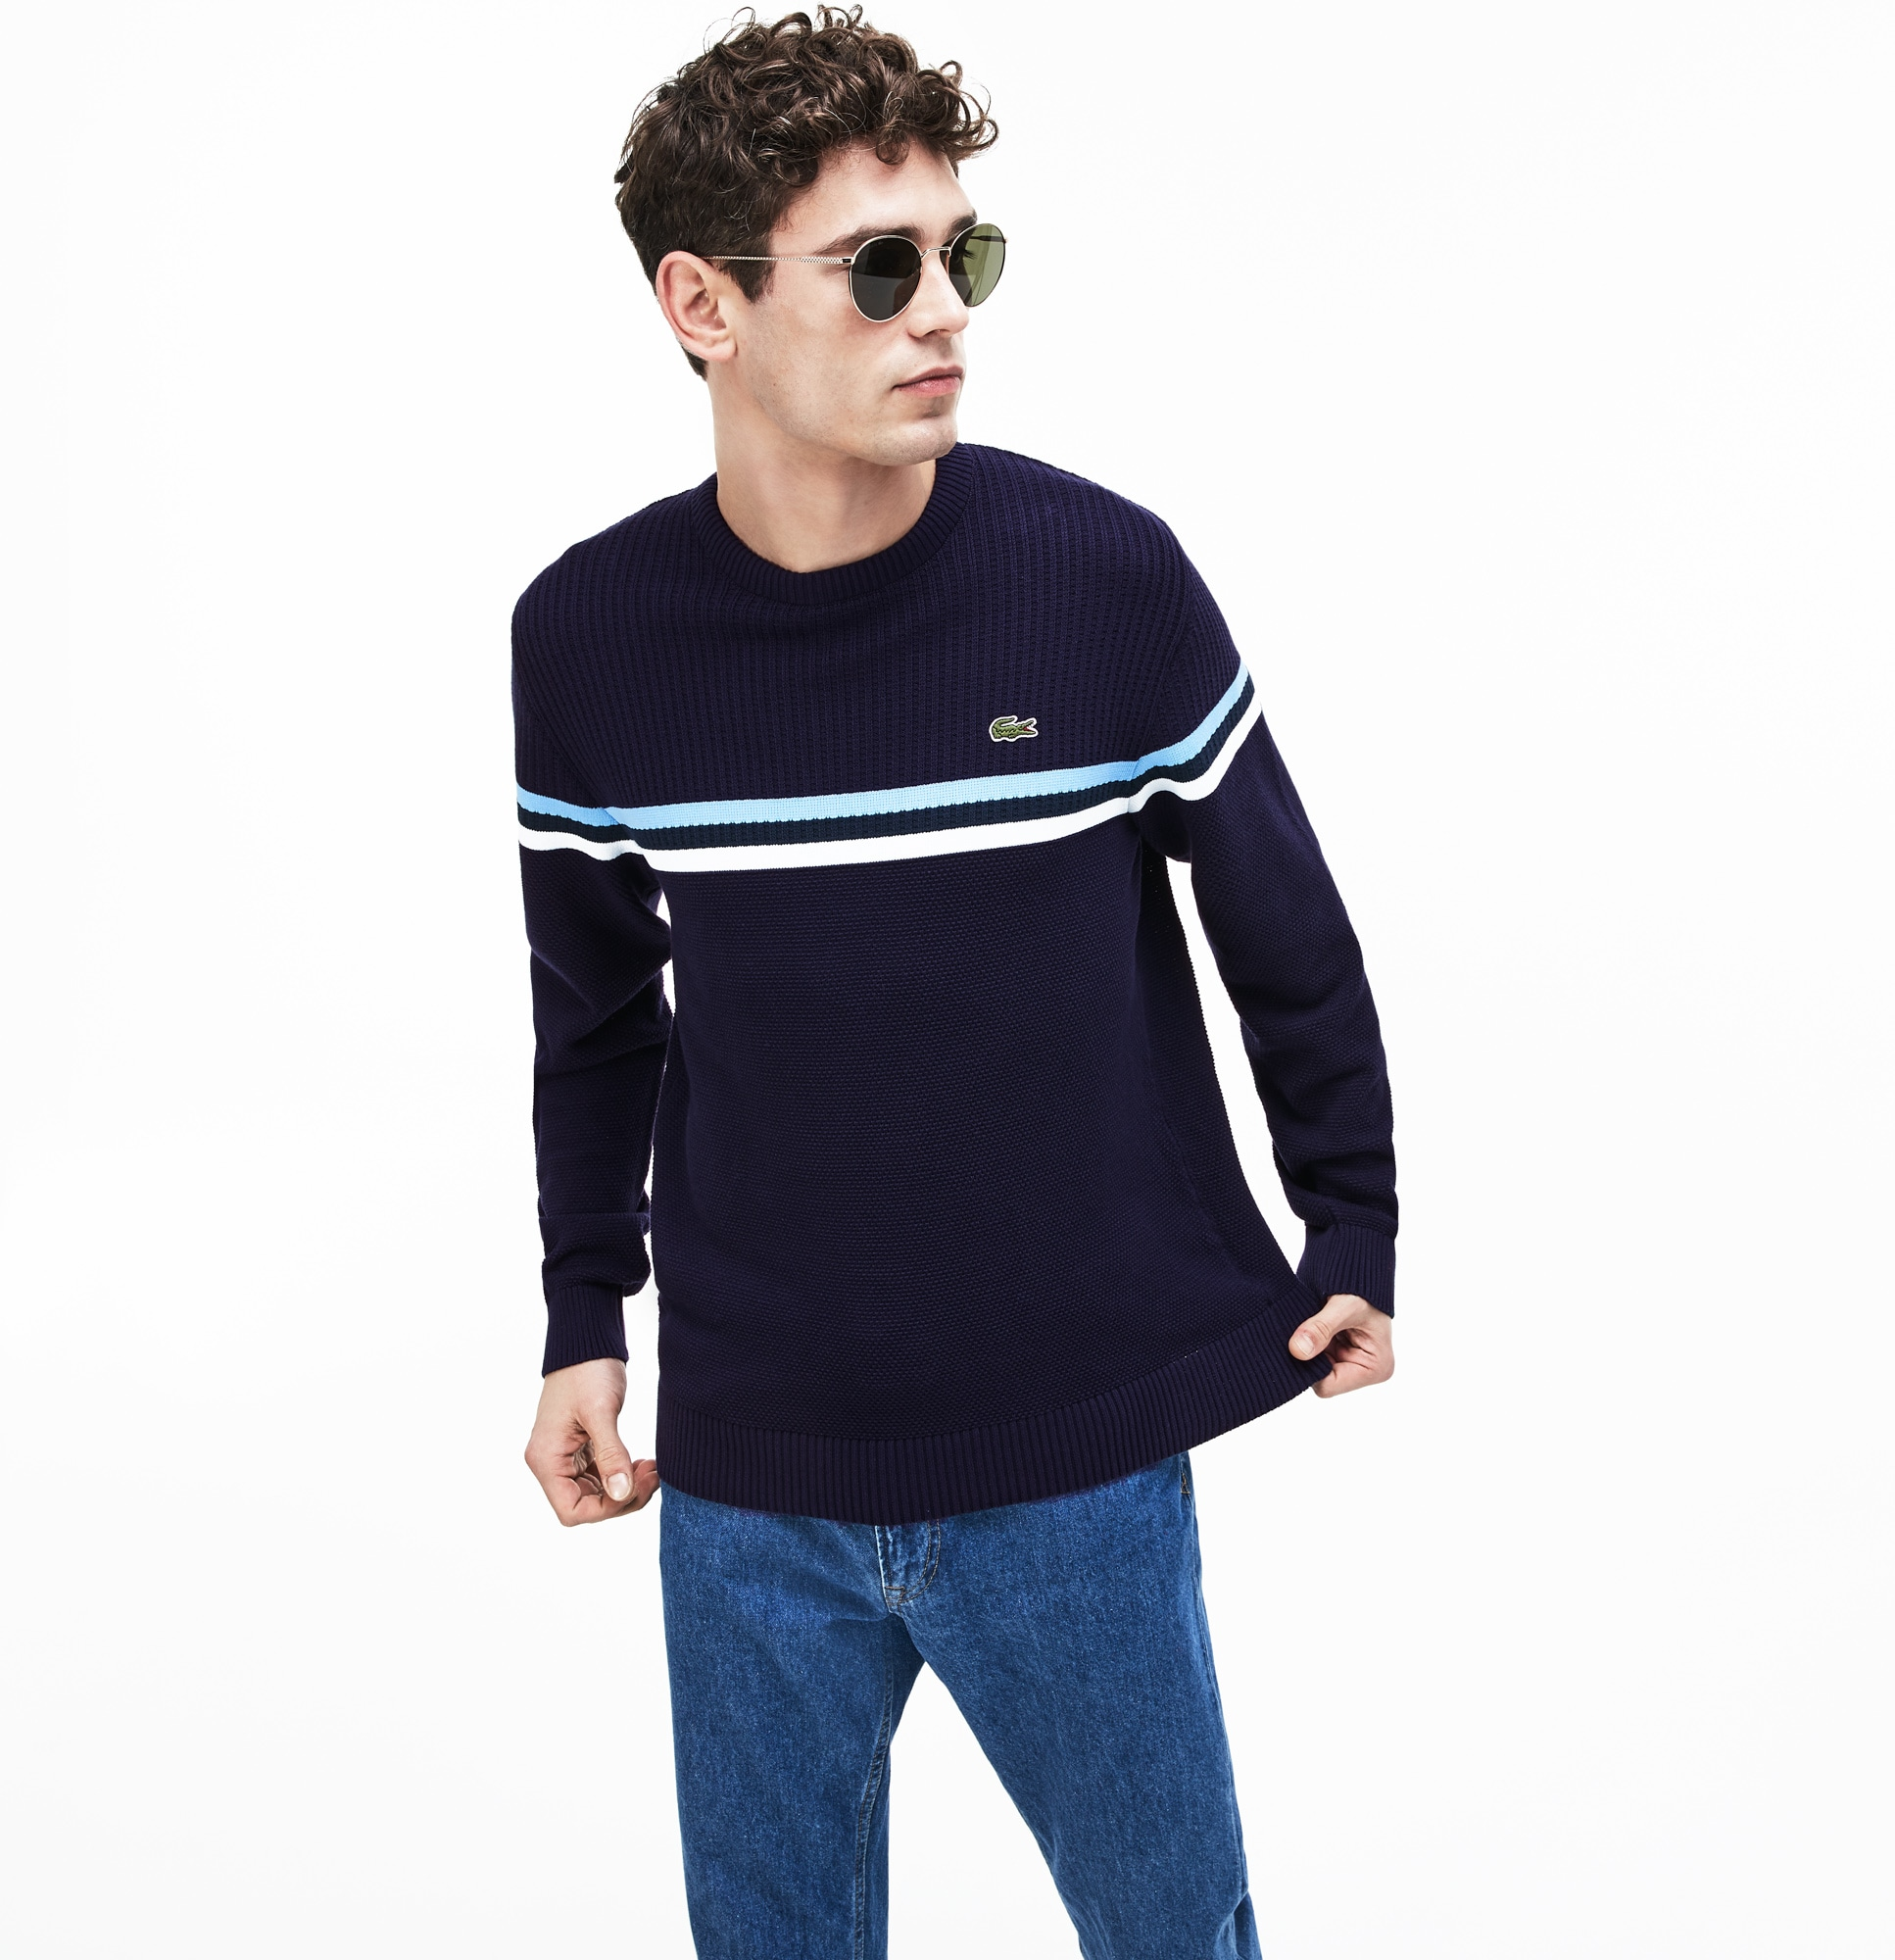 bc32ffa456 Pull Homme | Vêtements Homme | LACOSTE